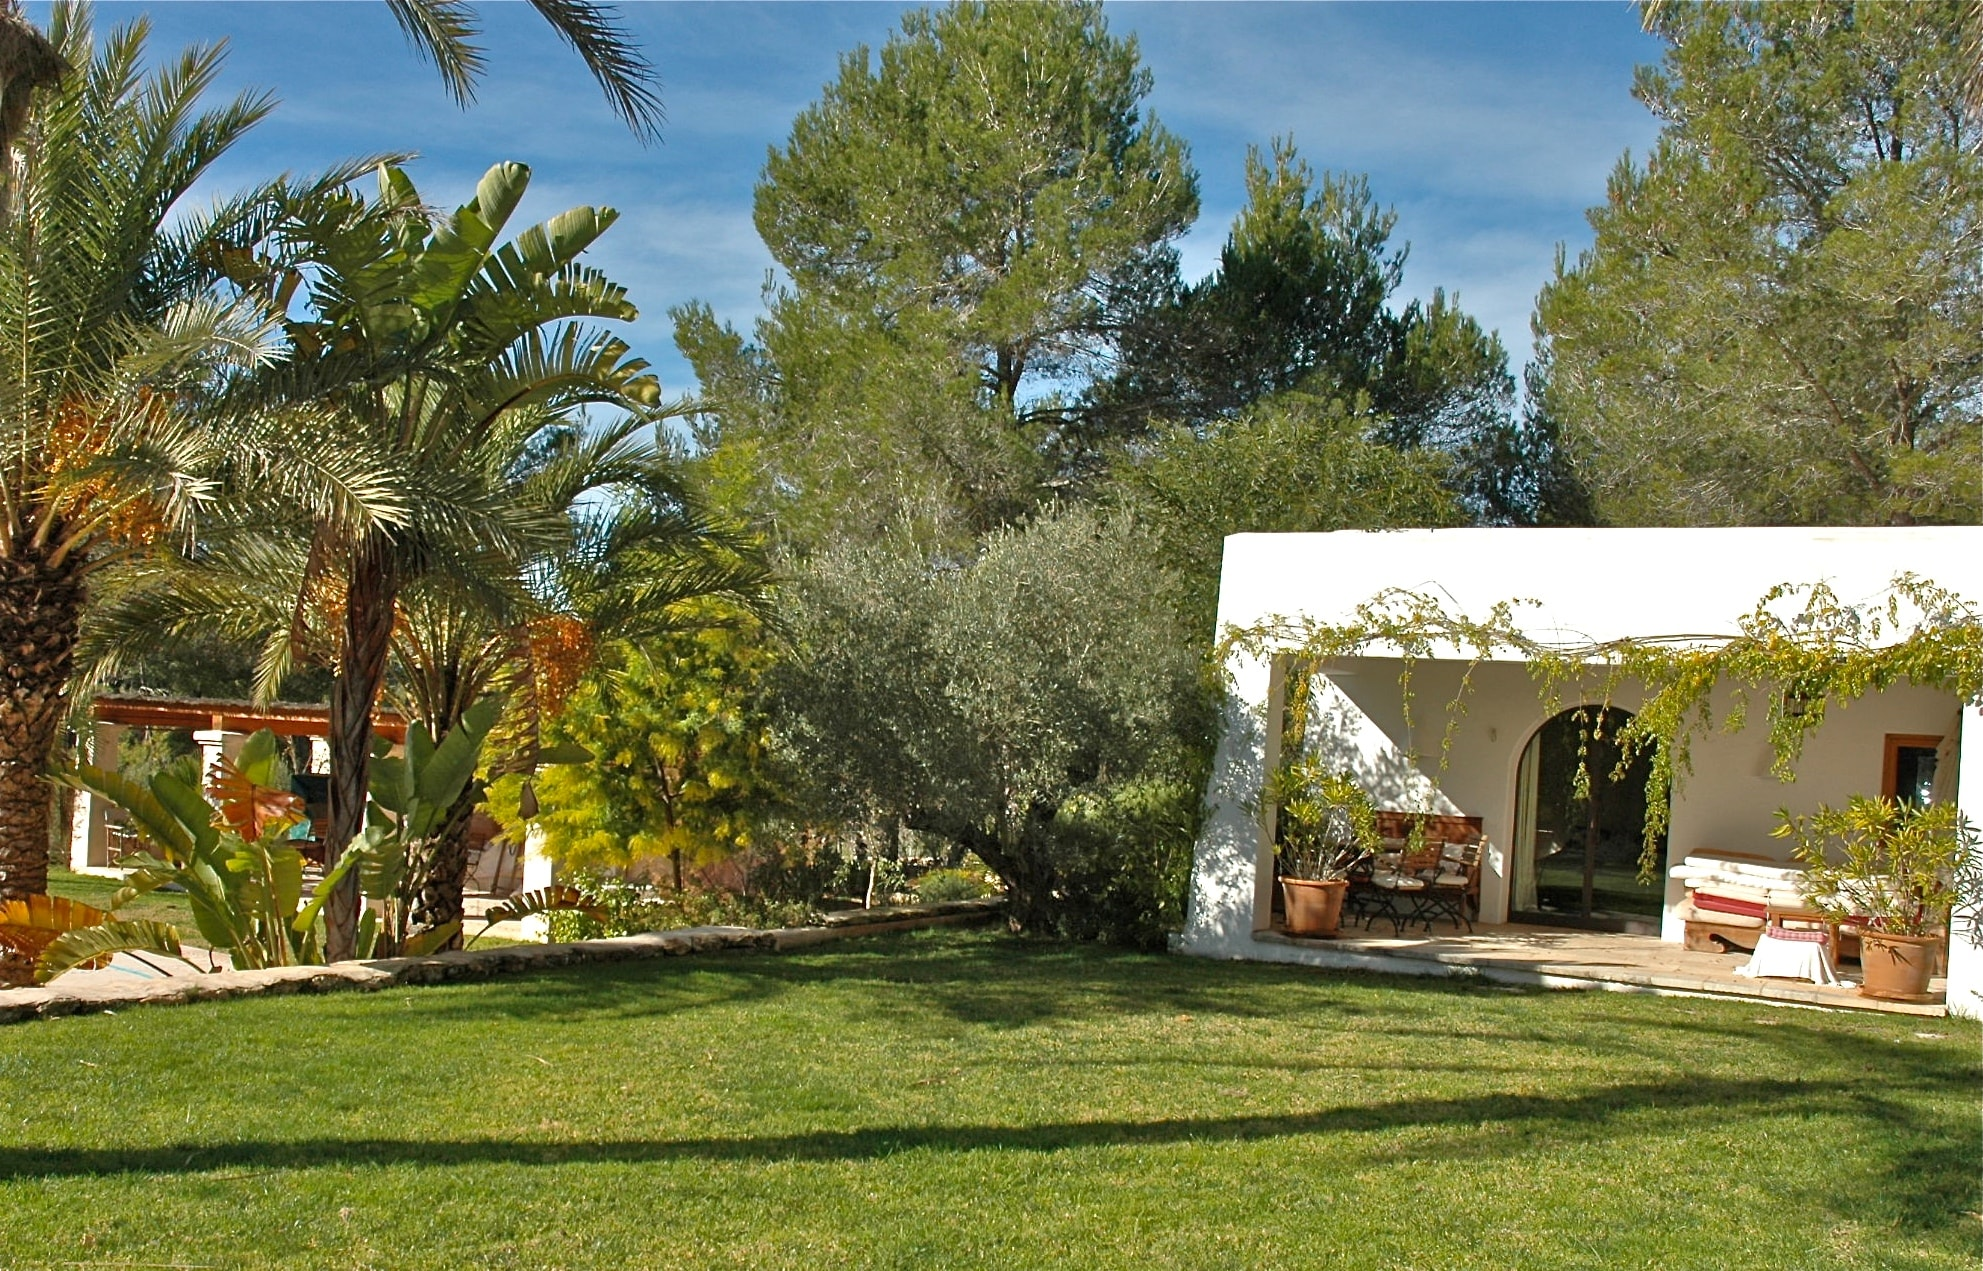 san rafael ibiza spain villa palm trees garden